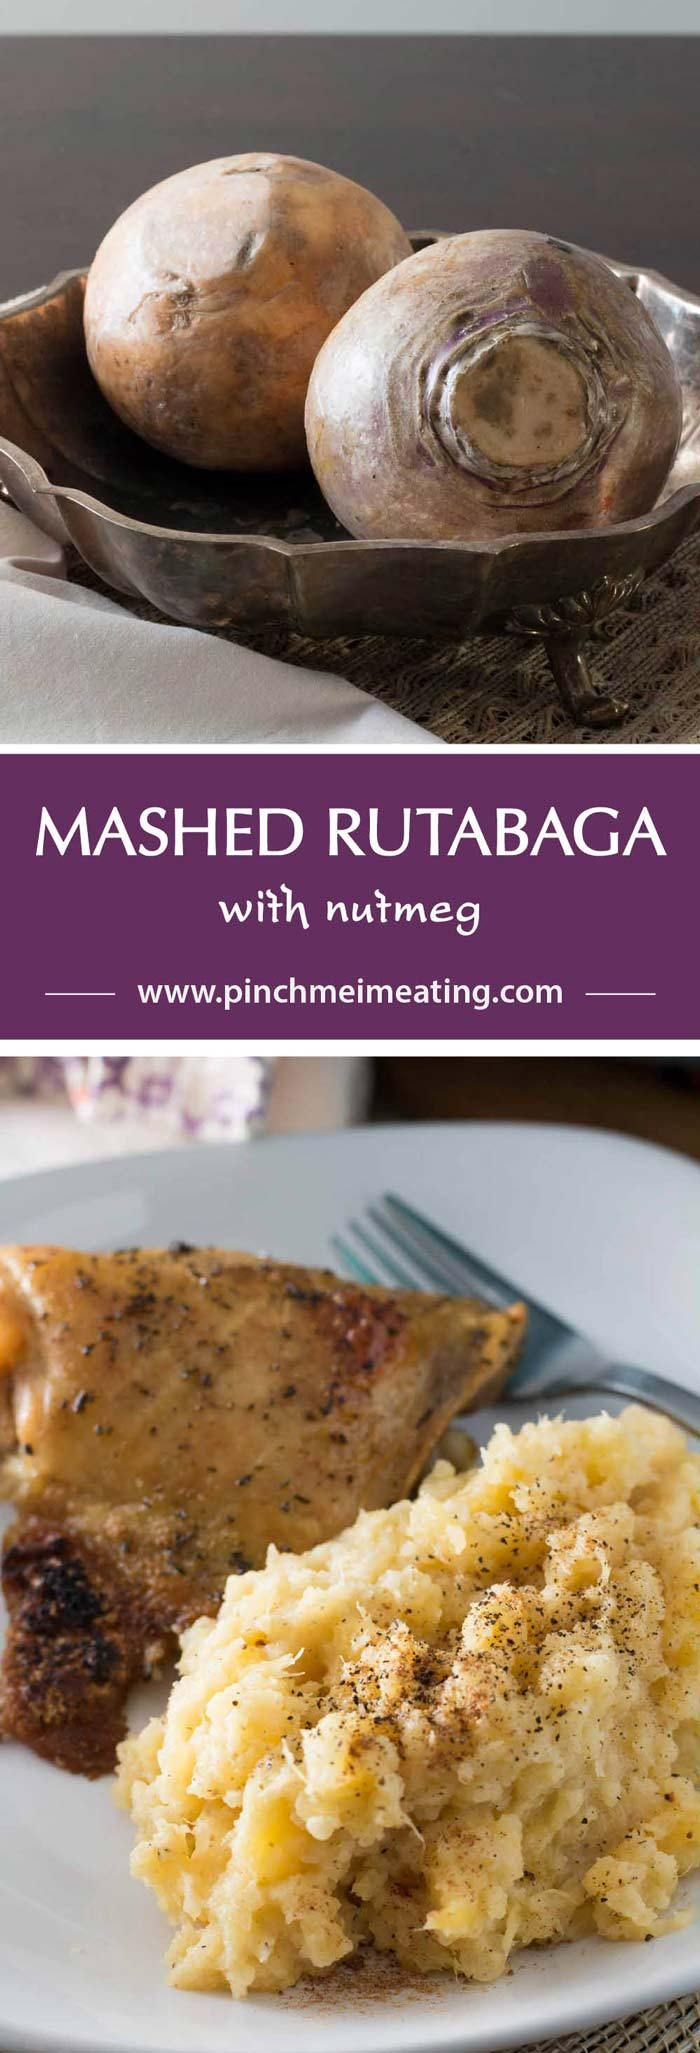 Mashed rutabaga is a delicious, naturally sweet low-carb Thanksgiving side dish made even better with a little nutmeg. You won't want to go back to potatoes! | www.pinchmeimeating.com